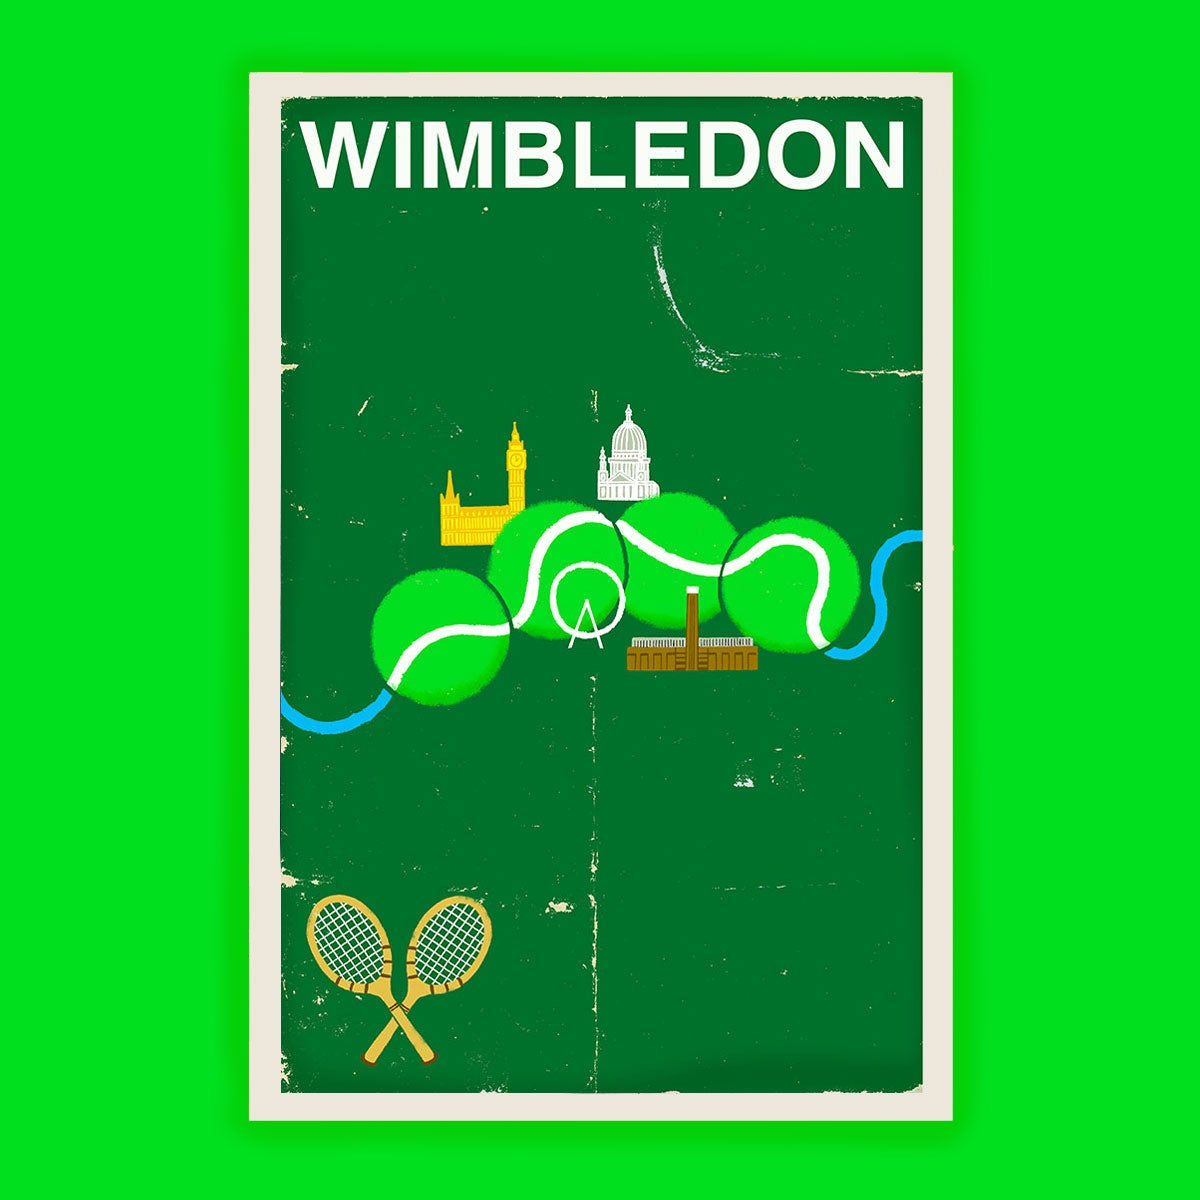 Wimbledon Tennis Poster Version B Paul Thurlby